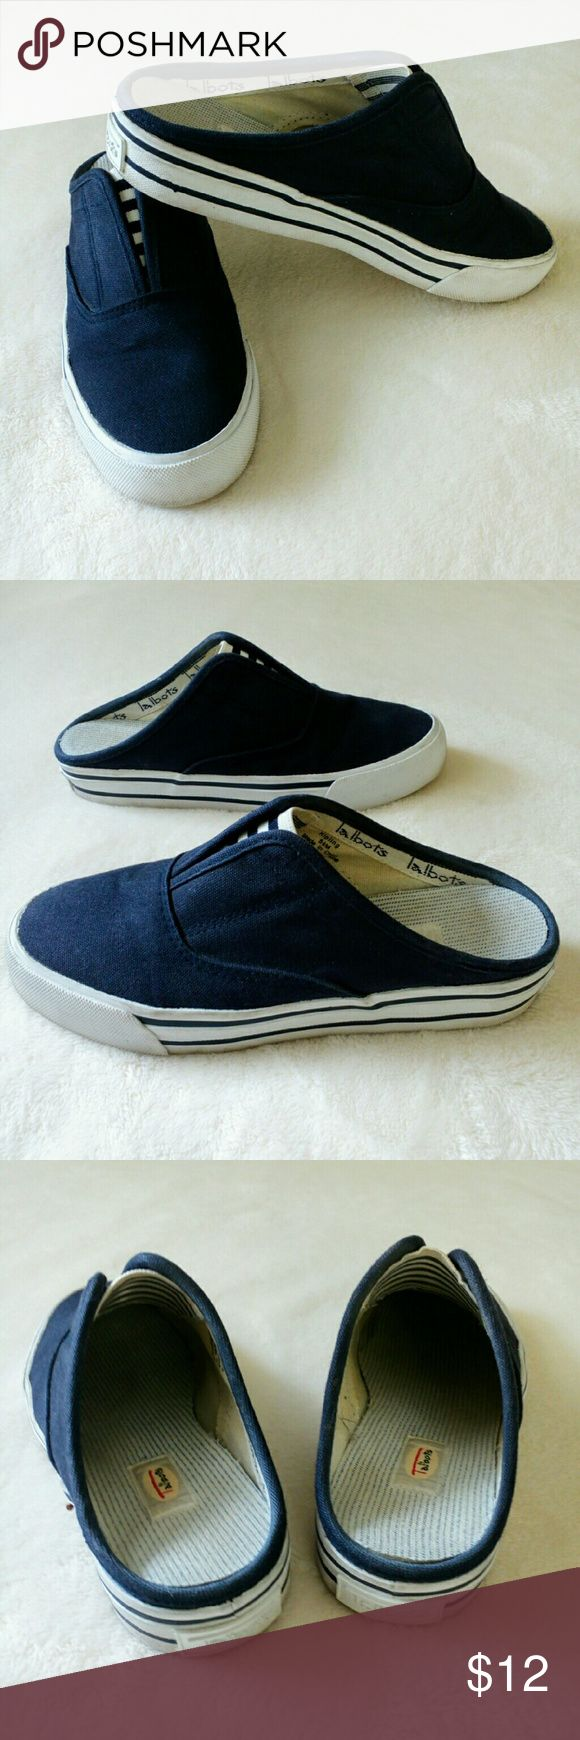 """🔵Talbot Mule Boat Shoes Size 5.5🔵 Very nice shape, gorgeous navy and white. Classic and Chic!! Measuring  on bottom of shoe, 9.25"""" L so 3.25"""" at the widest. These run a bit big in my opinion. Talbots Shoes Mules & Clogs"""